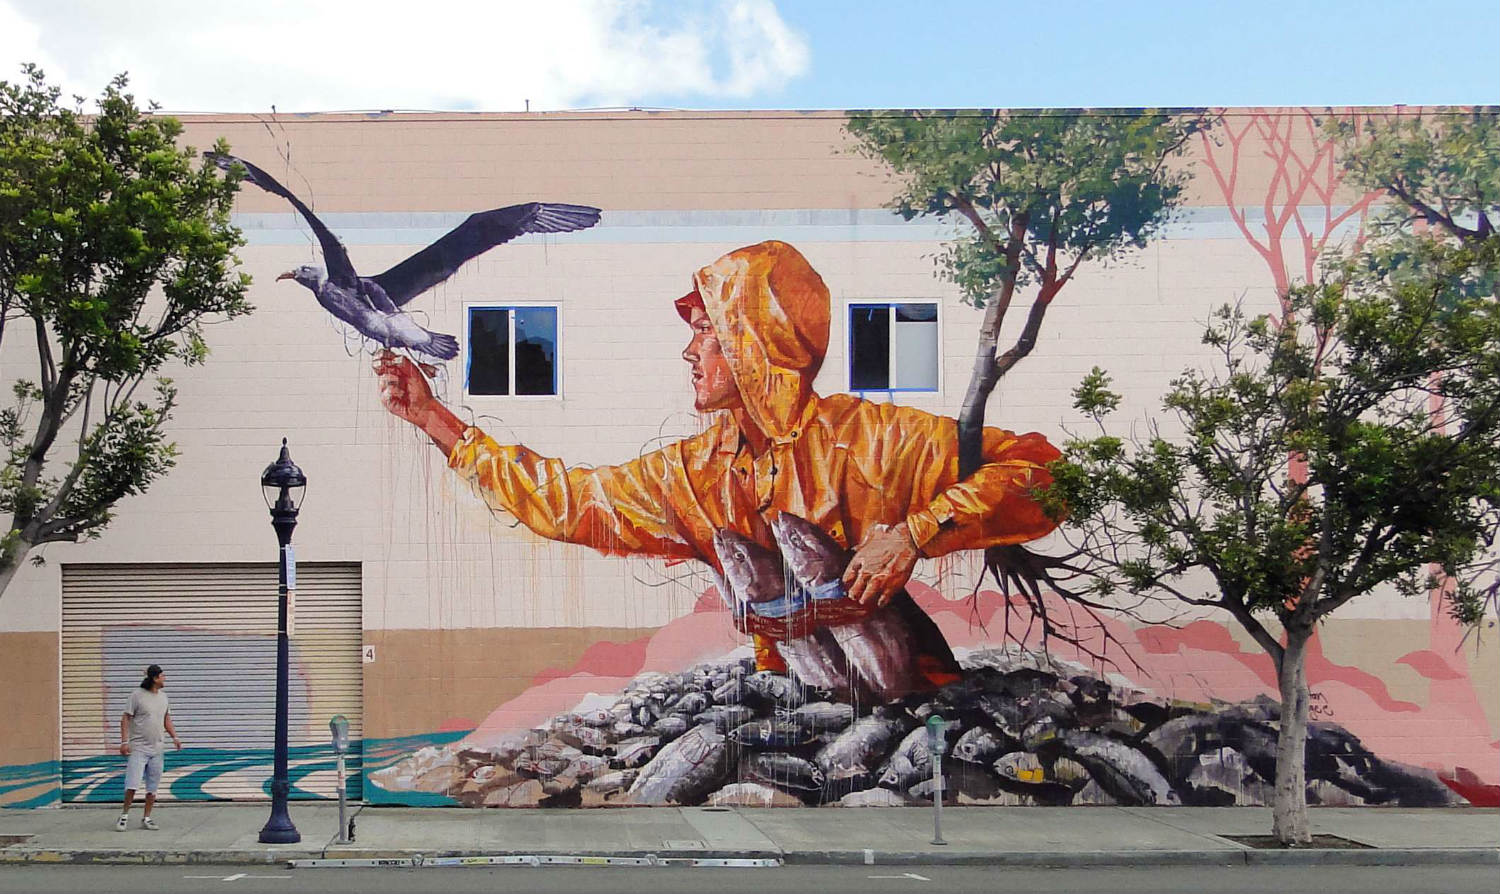 Fintan Magee fisherman street art in San Diego